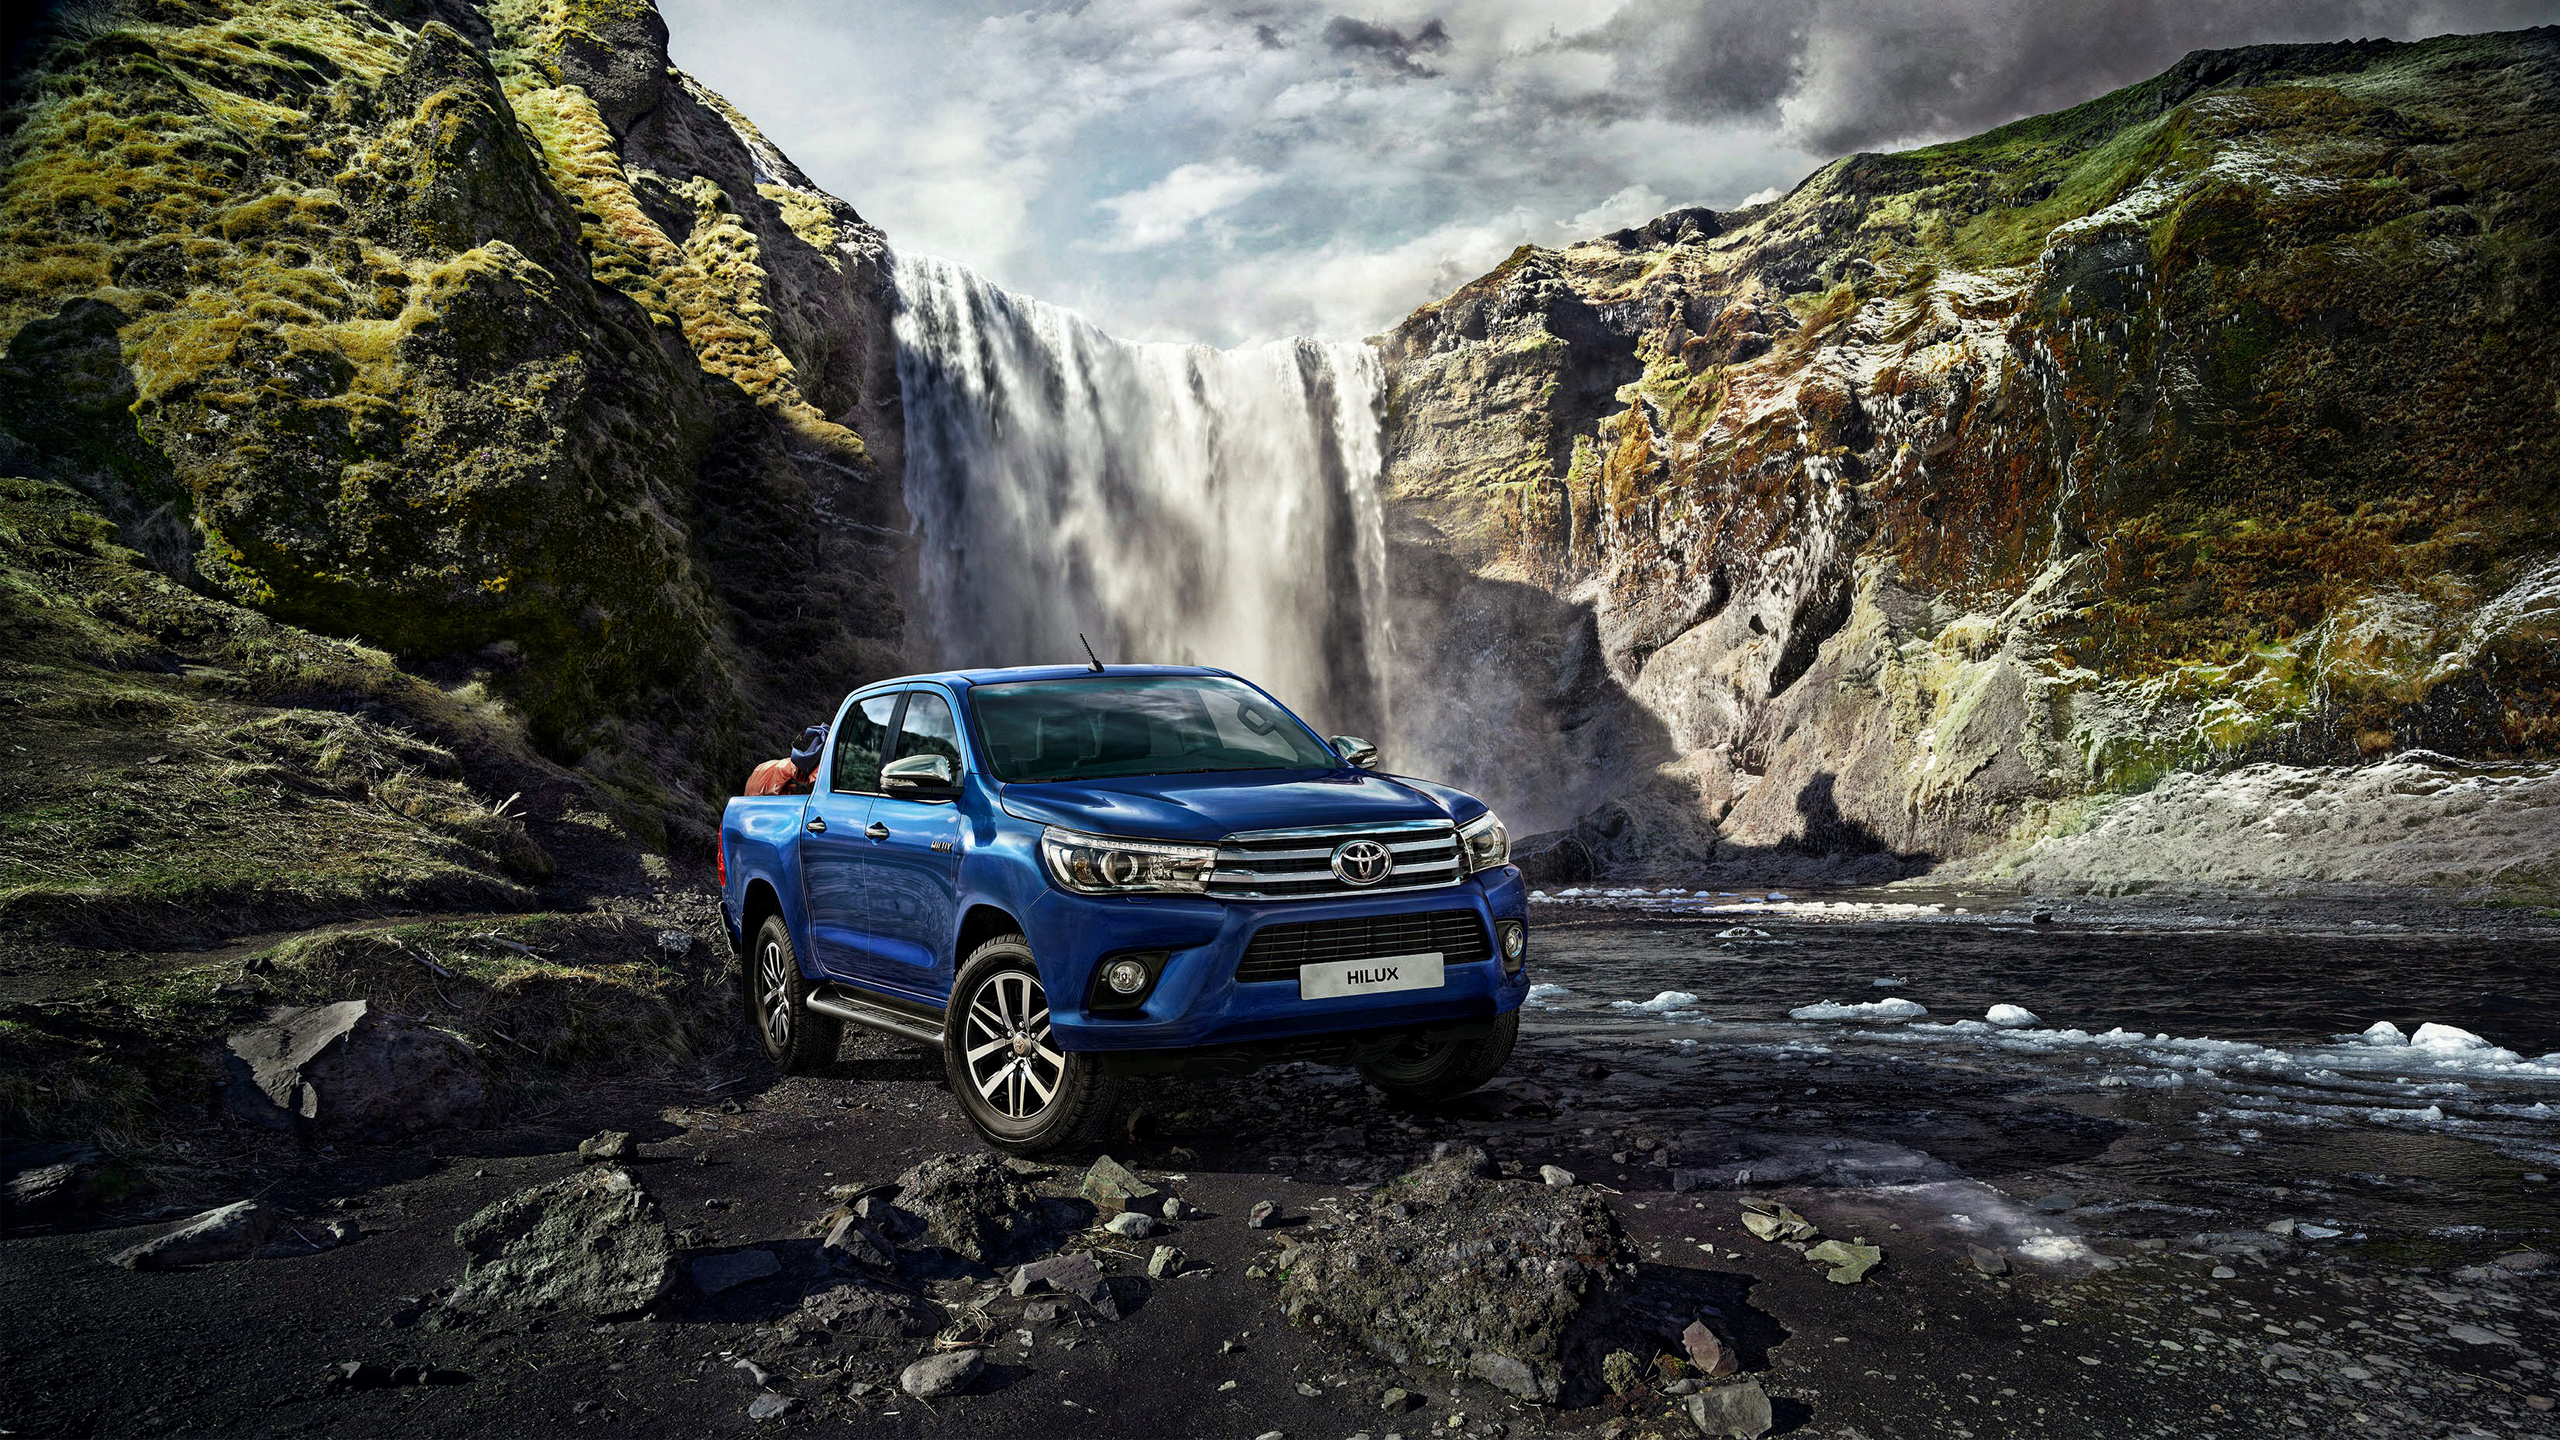 2015 Toyota Hilux Wallpaper Hd Car Wallpapers Id 5627